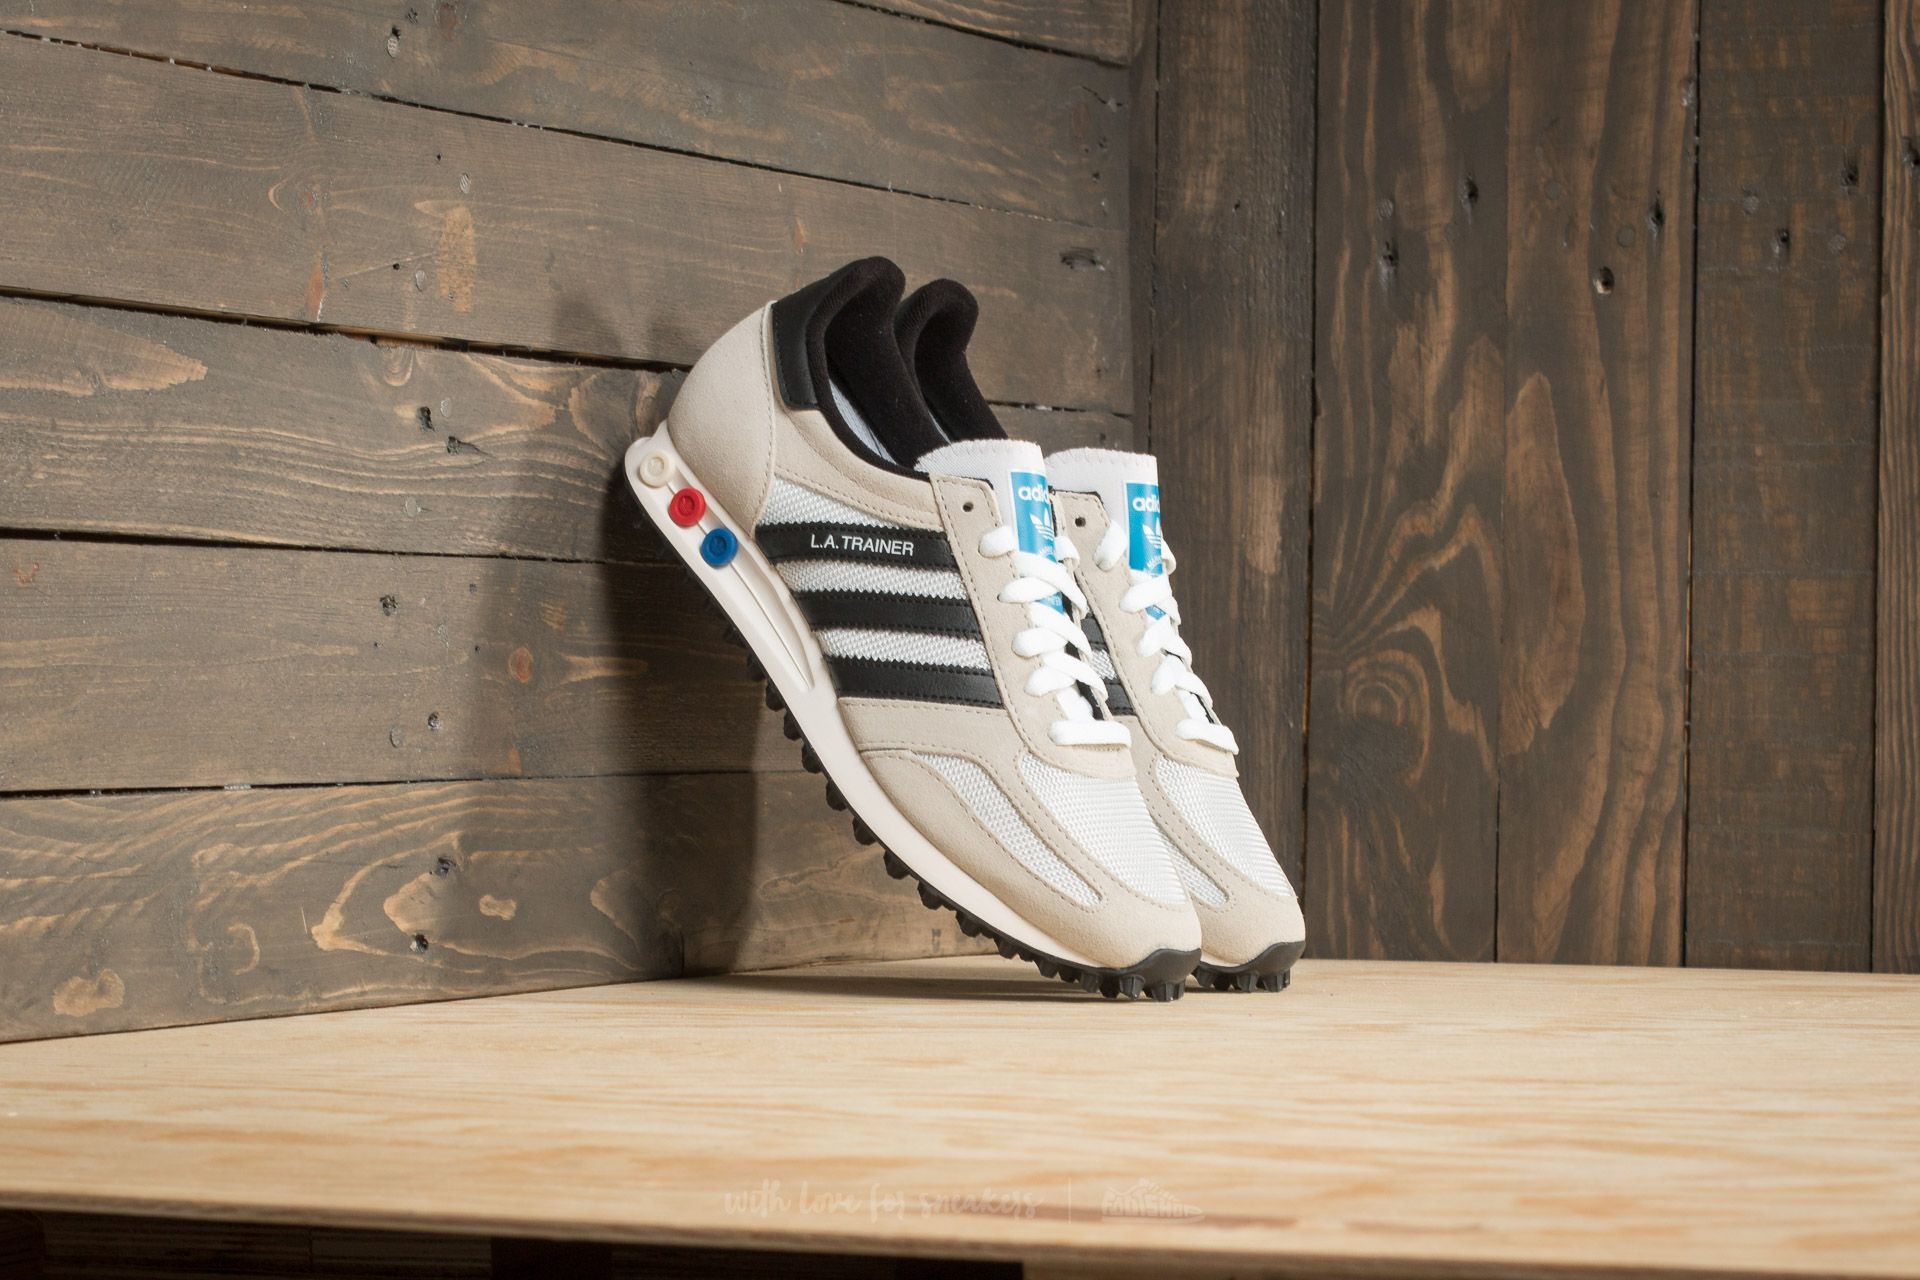 5bee45761a58 adidas LA Trainer OG Vintage White  Core Black  Clear Brown